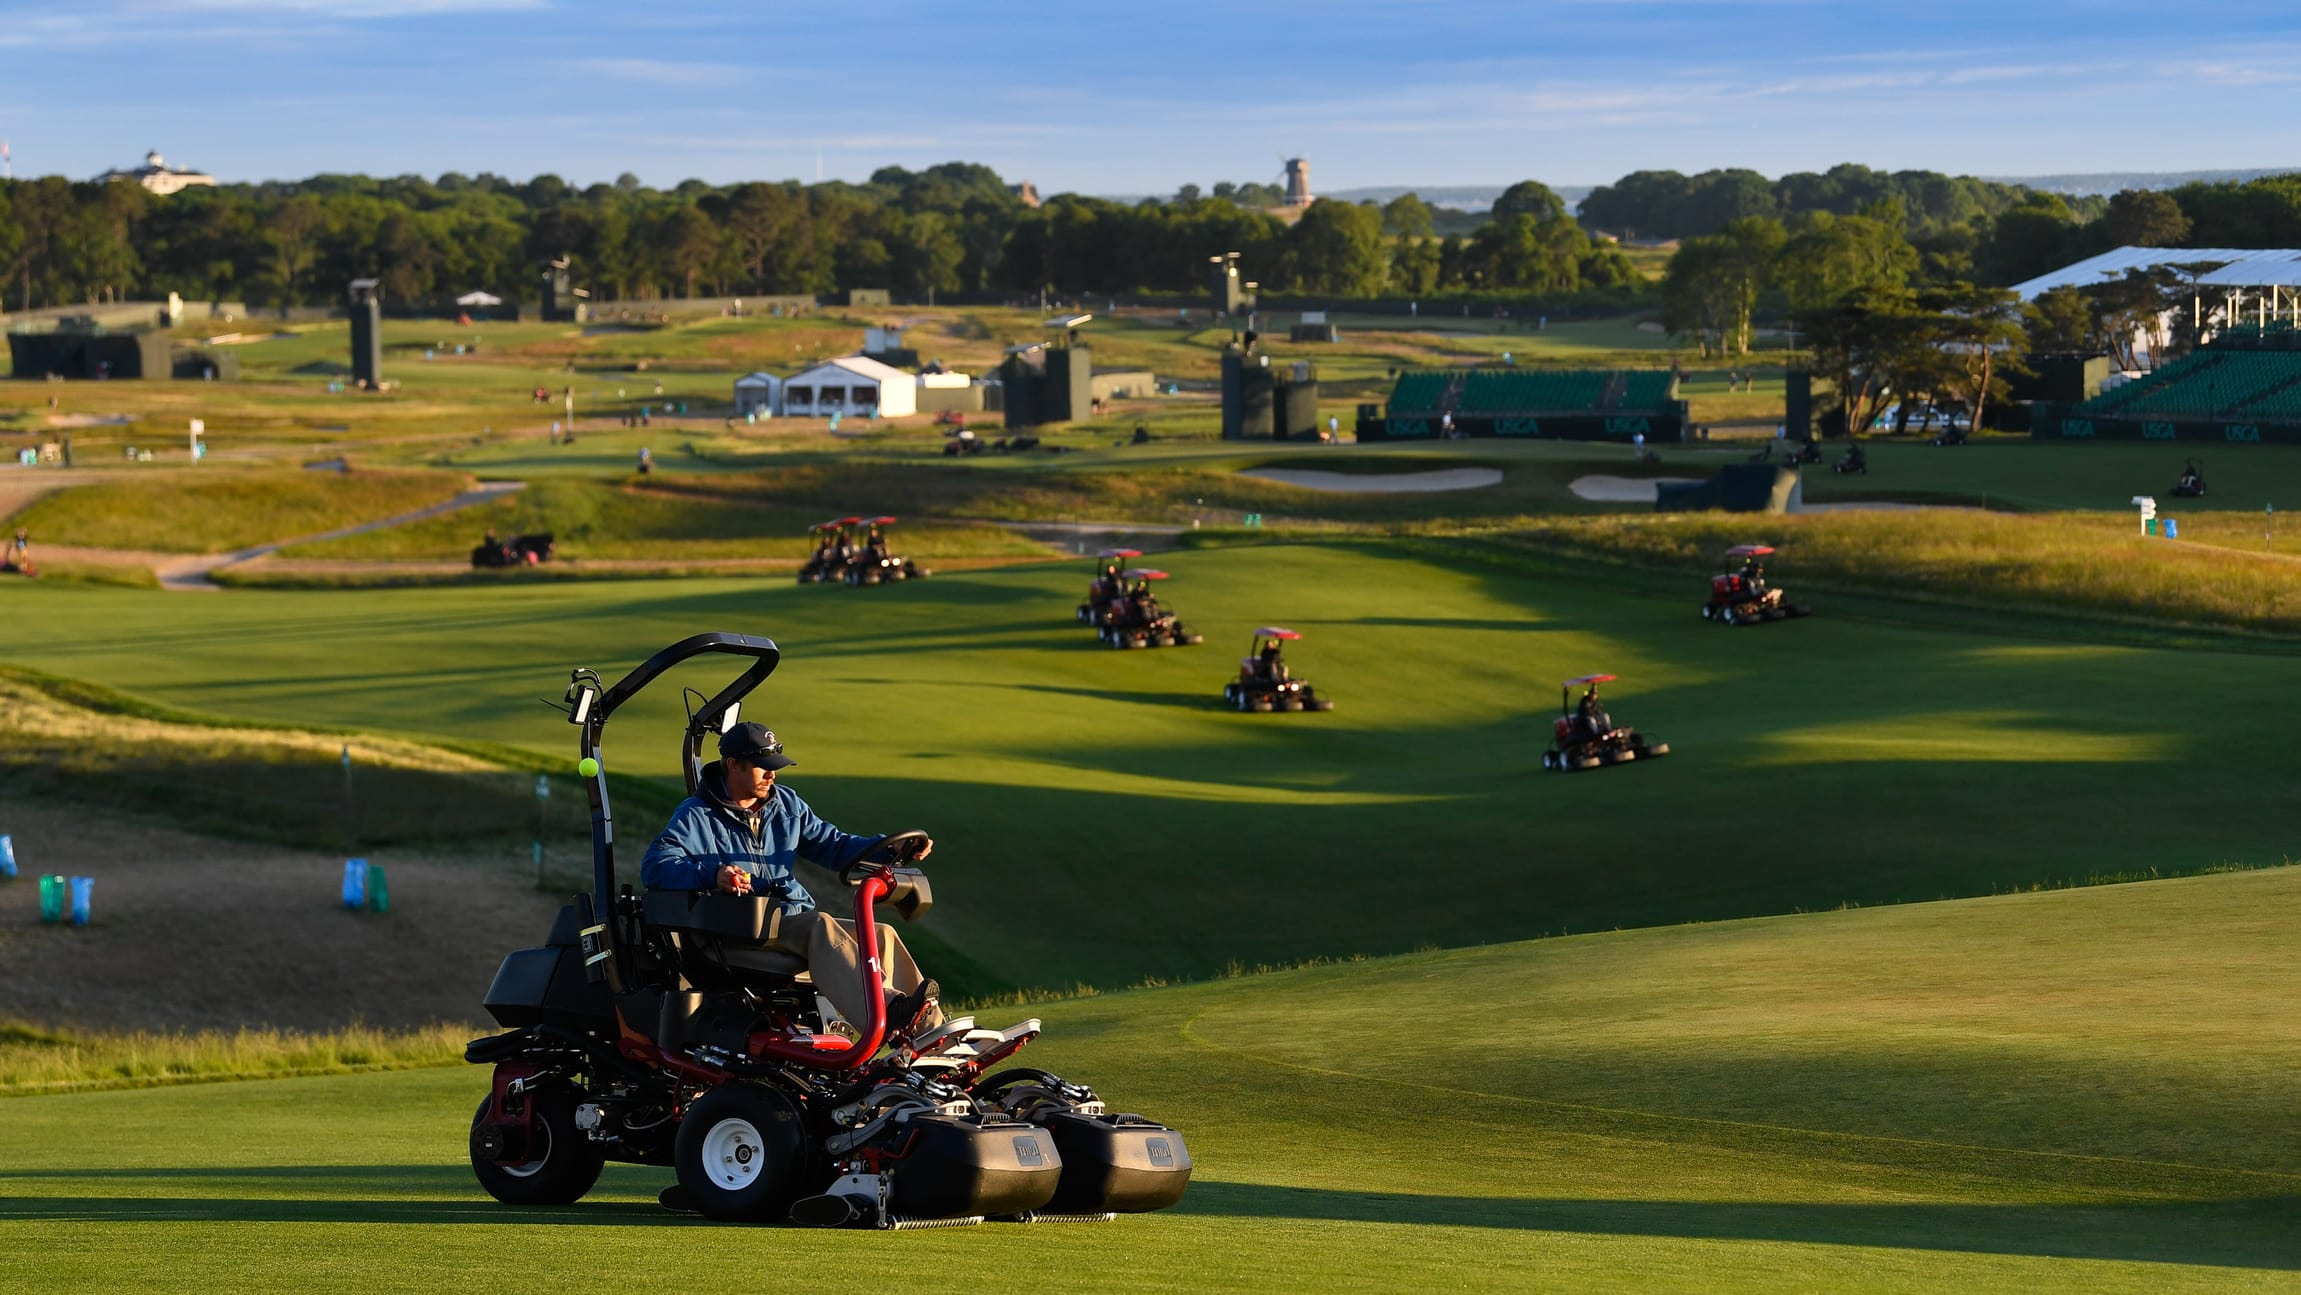 3faa6677c99 Maintenance workers preparing the course for the second round of the 2018  U.S. Open at Shinnecock Hills Golf Club in Southampton